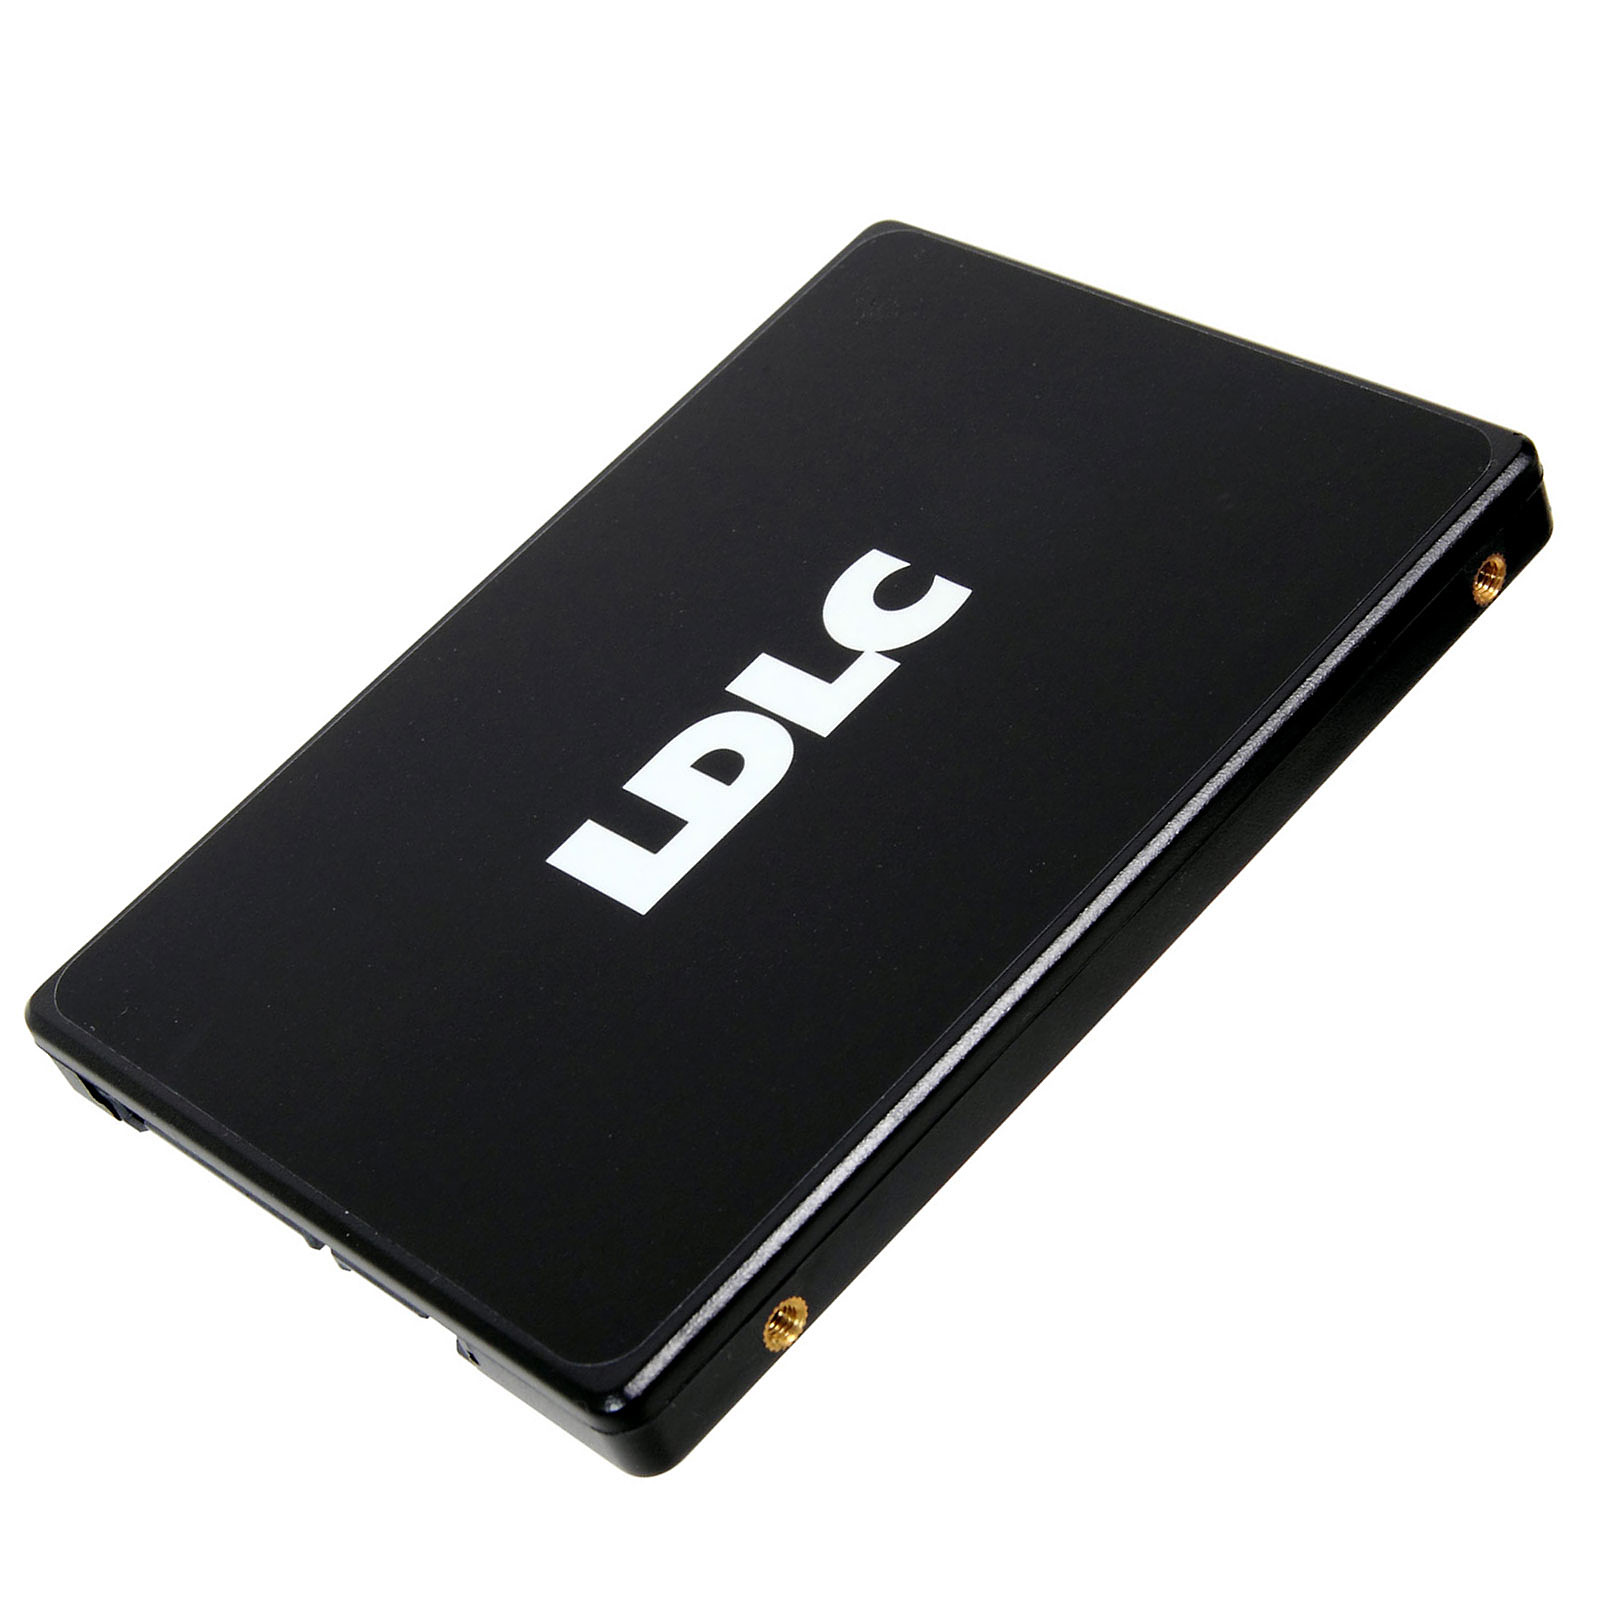 LDLC SSD F7 PLUS 3D NAND 240 GB